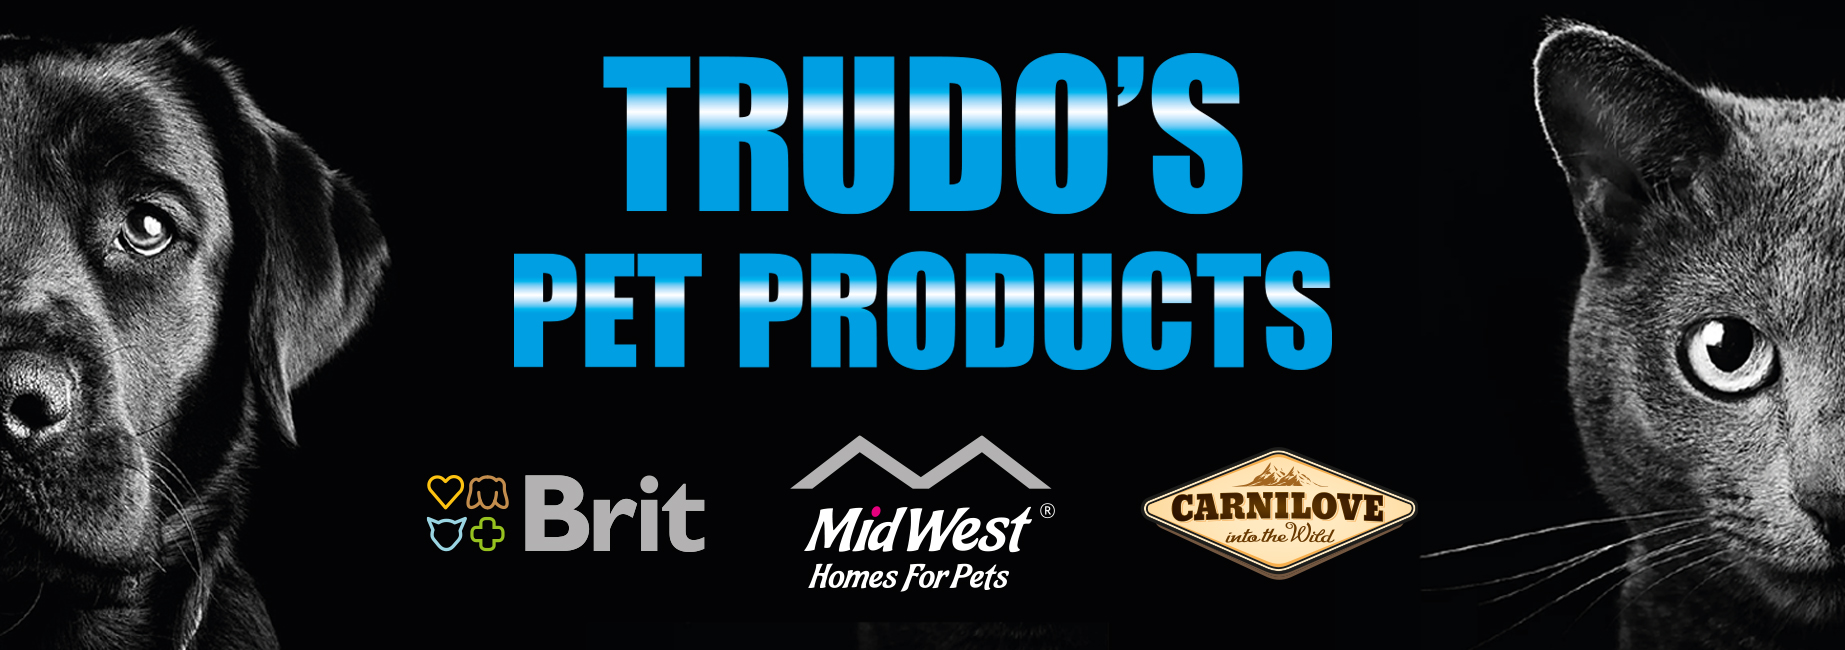 www.trudospetproducts.be